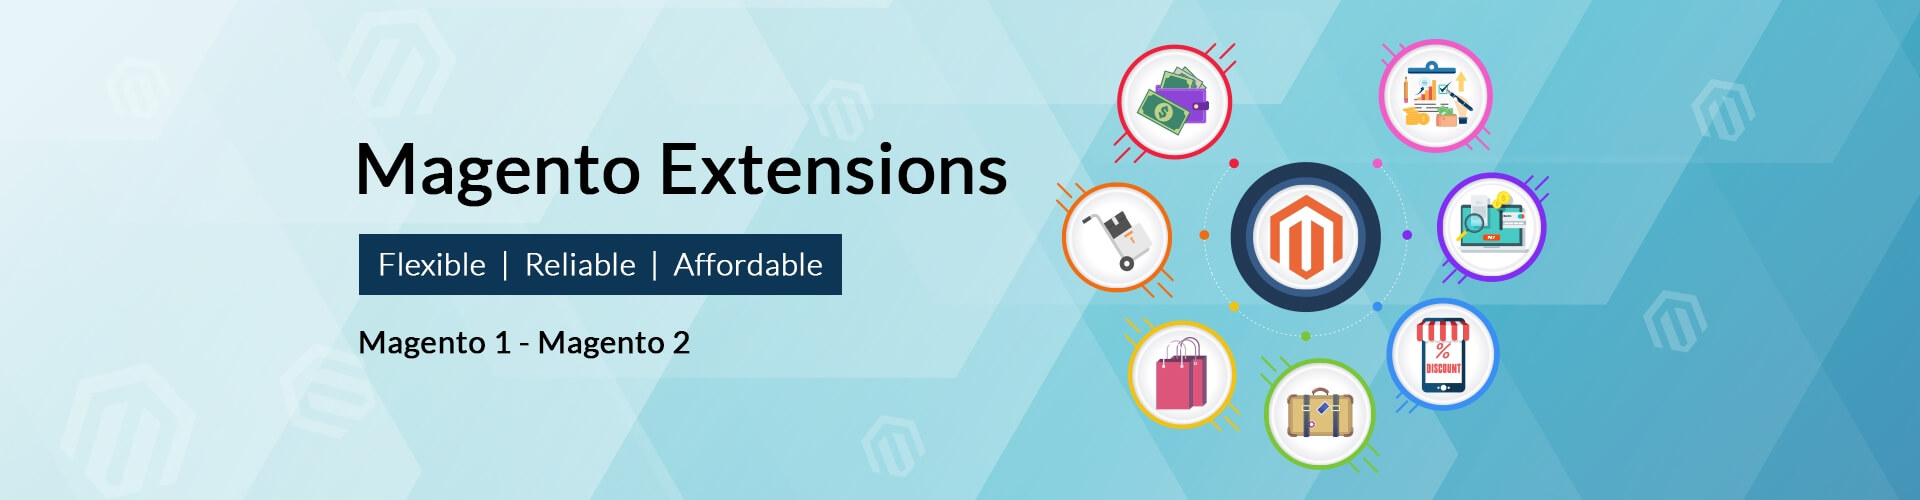 Magento Plugins and Modules – Elsner images Magento Extensions 1 HD